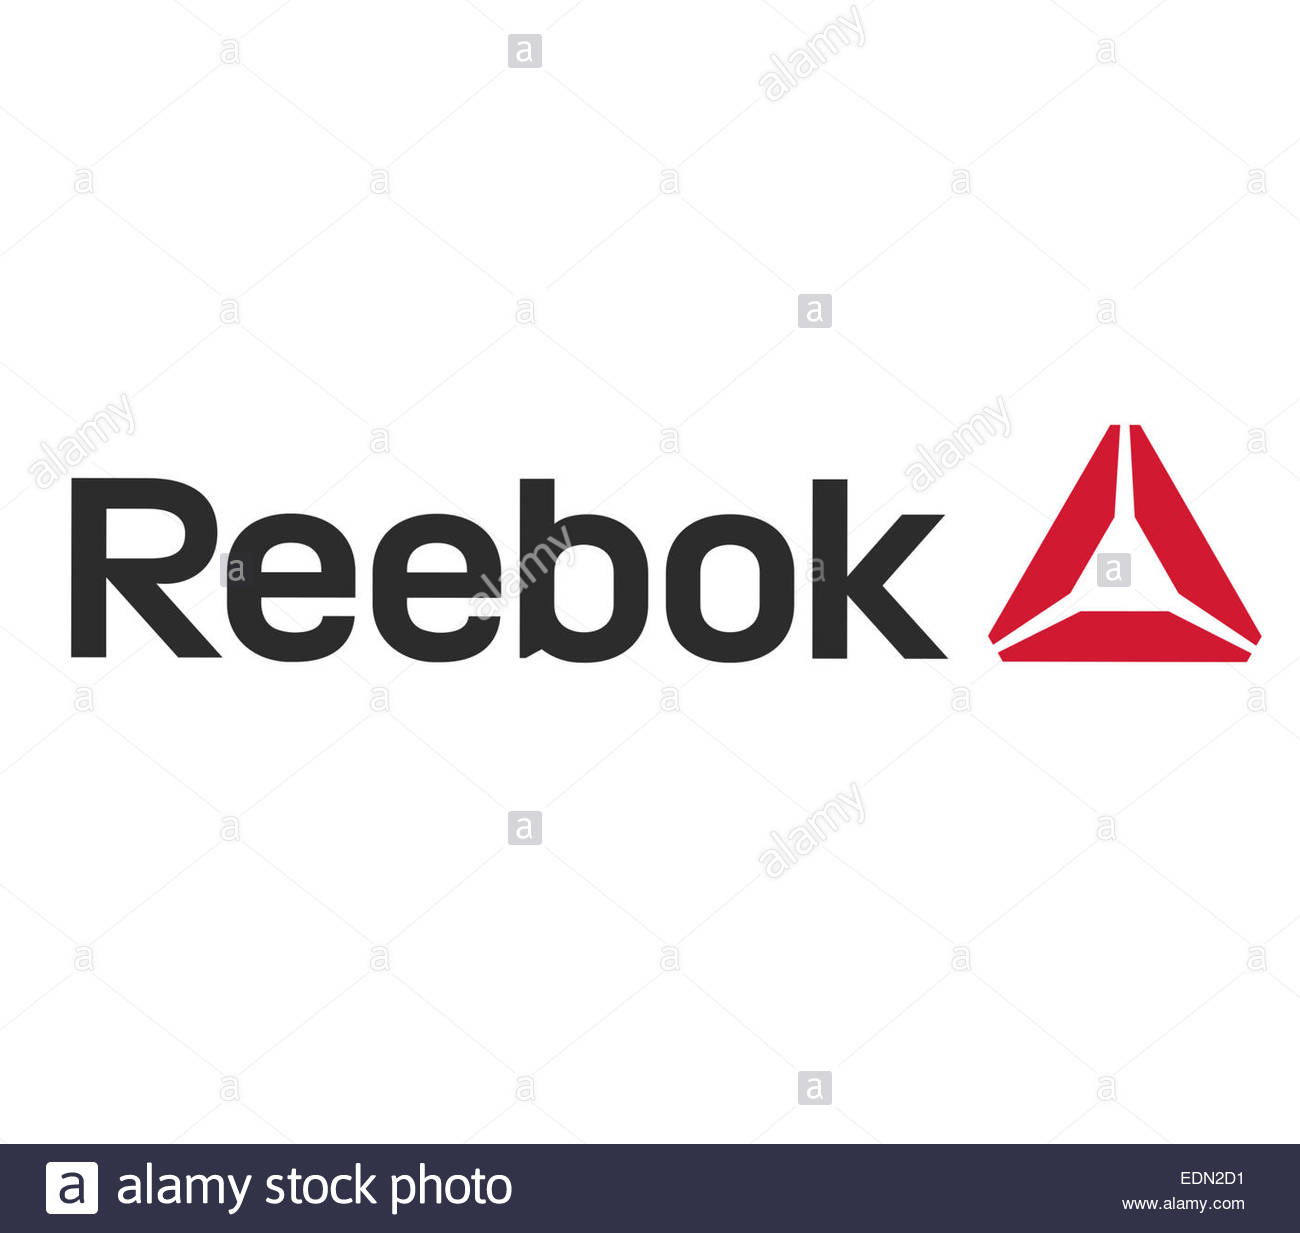 Reebok stock symbol images symbol and sign ideas reebok logo icon sign stock photo 77294925 alamy reebok logo icon sign buycottarizona images buycottarizona Image collections